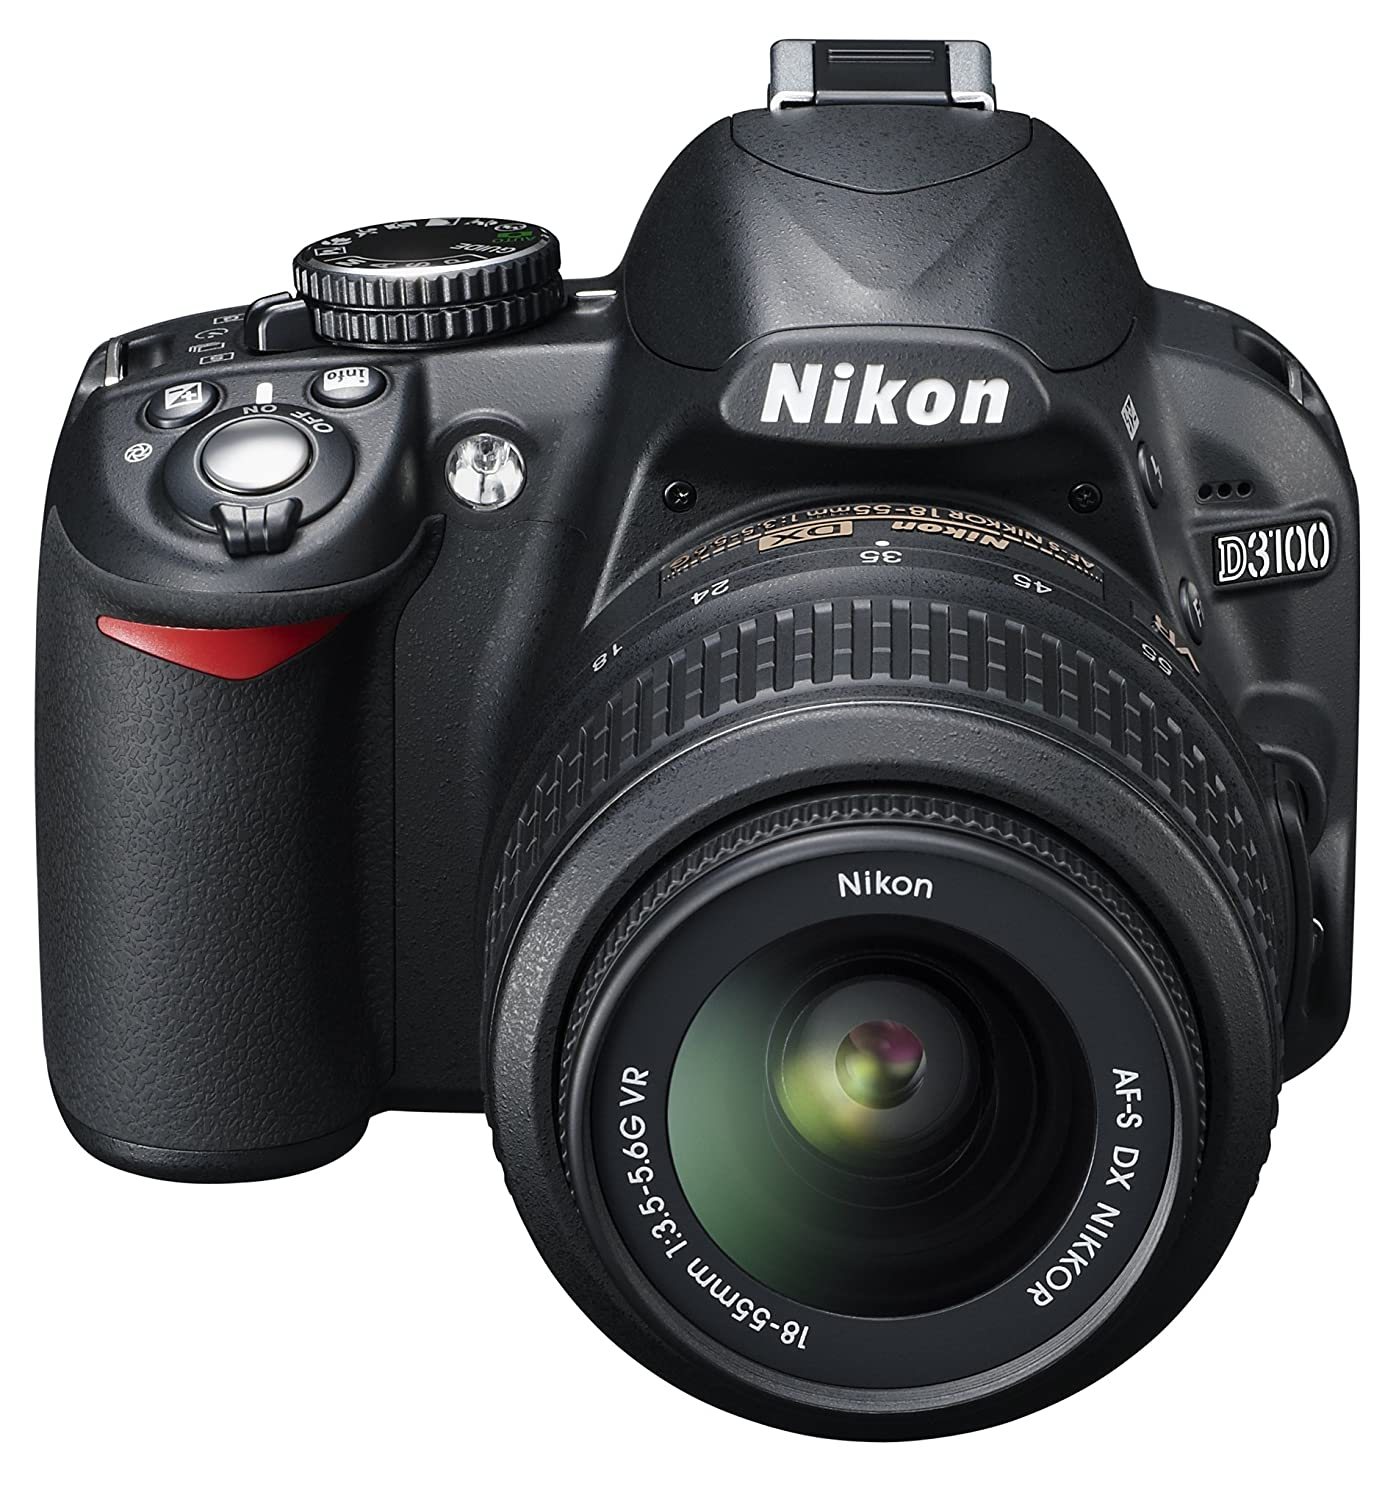 Nikon D3100 Digital SLR Camera with 18-55mm VR Lens Kit: Amazon co